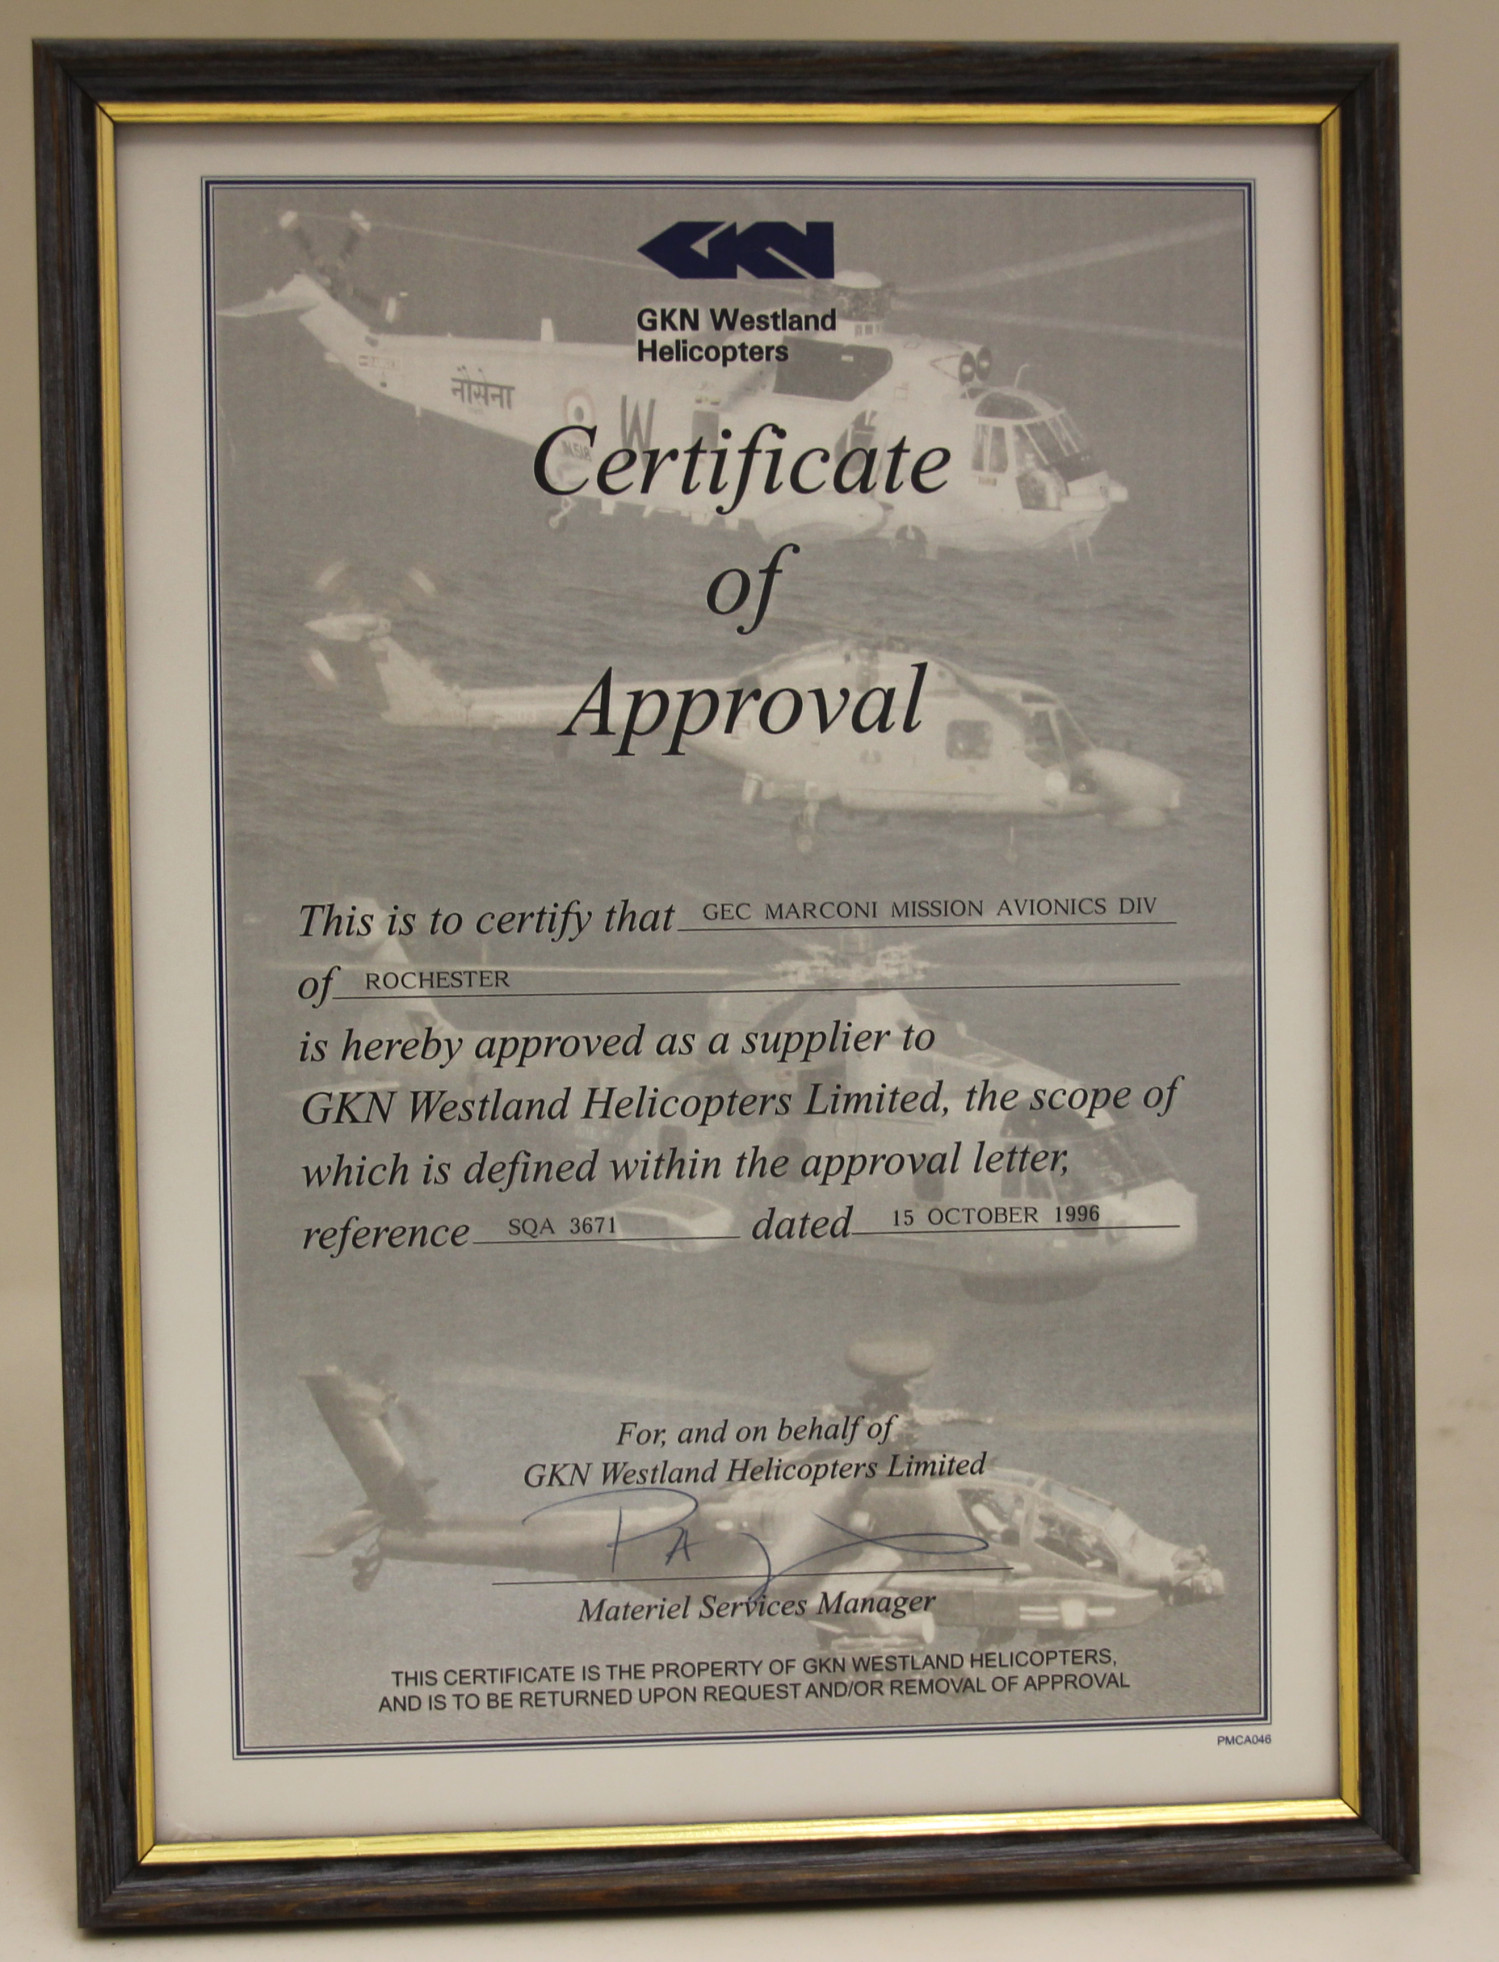 Certificate of Approval from GKN Westland.